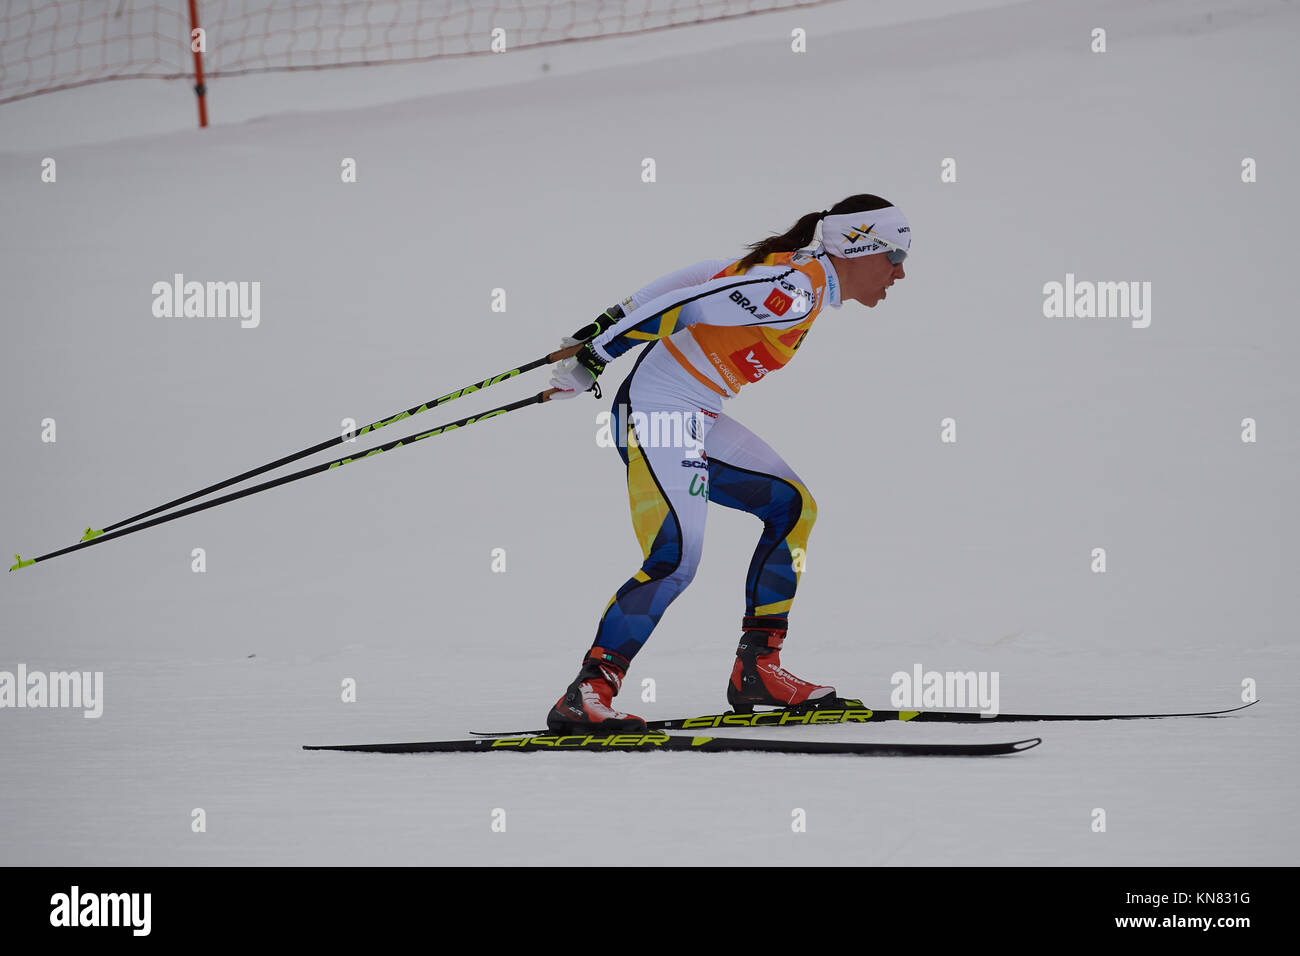 Davos, Switzerland, 10th December 2017. KALLA Charlotte (SWE) during the Ladies' 10 km F competition at the FIS - Stock Image